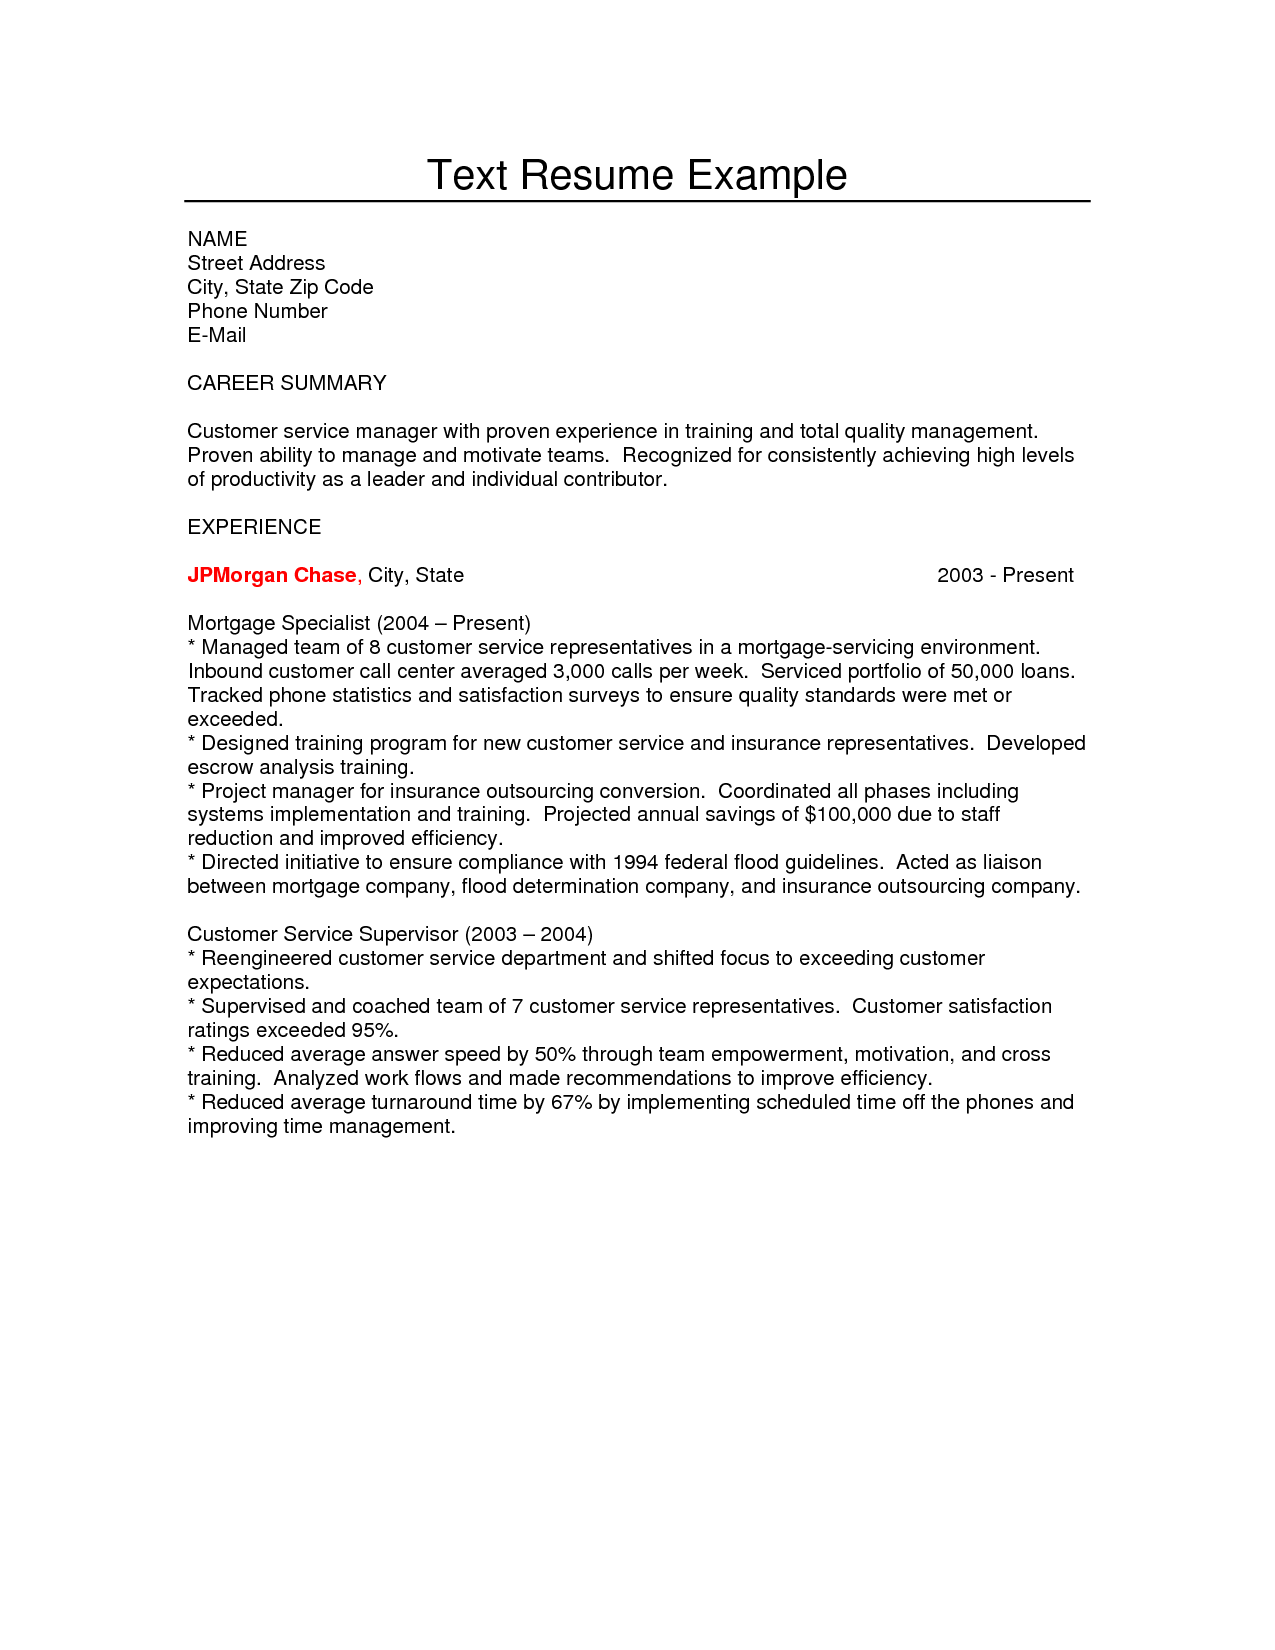 resume Plain Text Resume plain text resume sample resumes hardcopy and of fonts images example sample